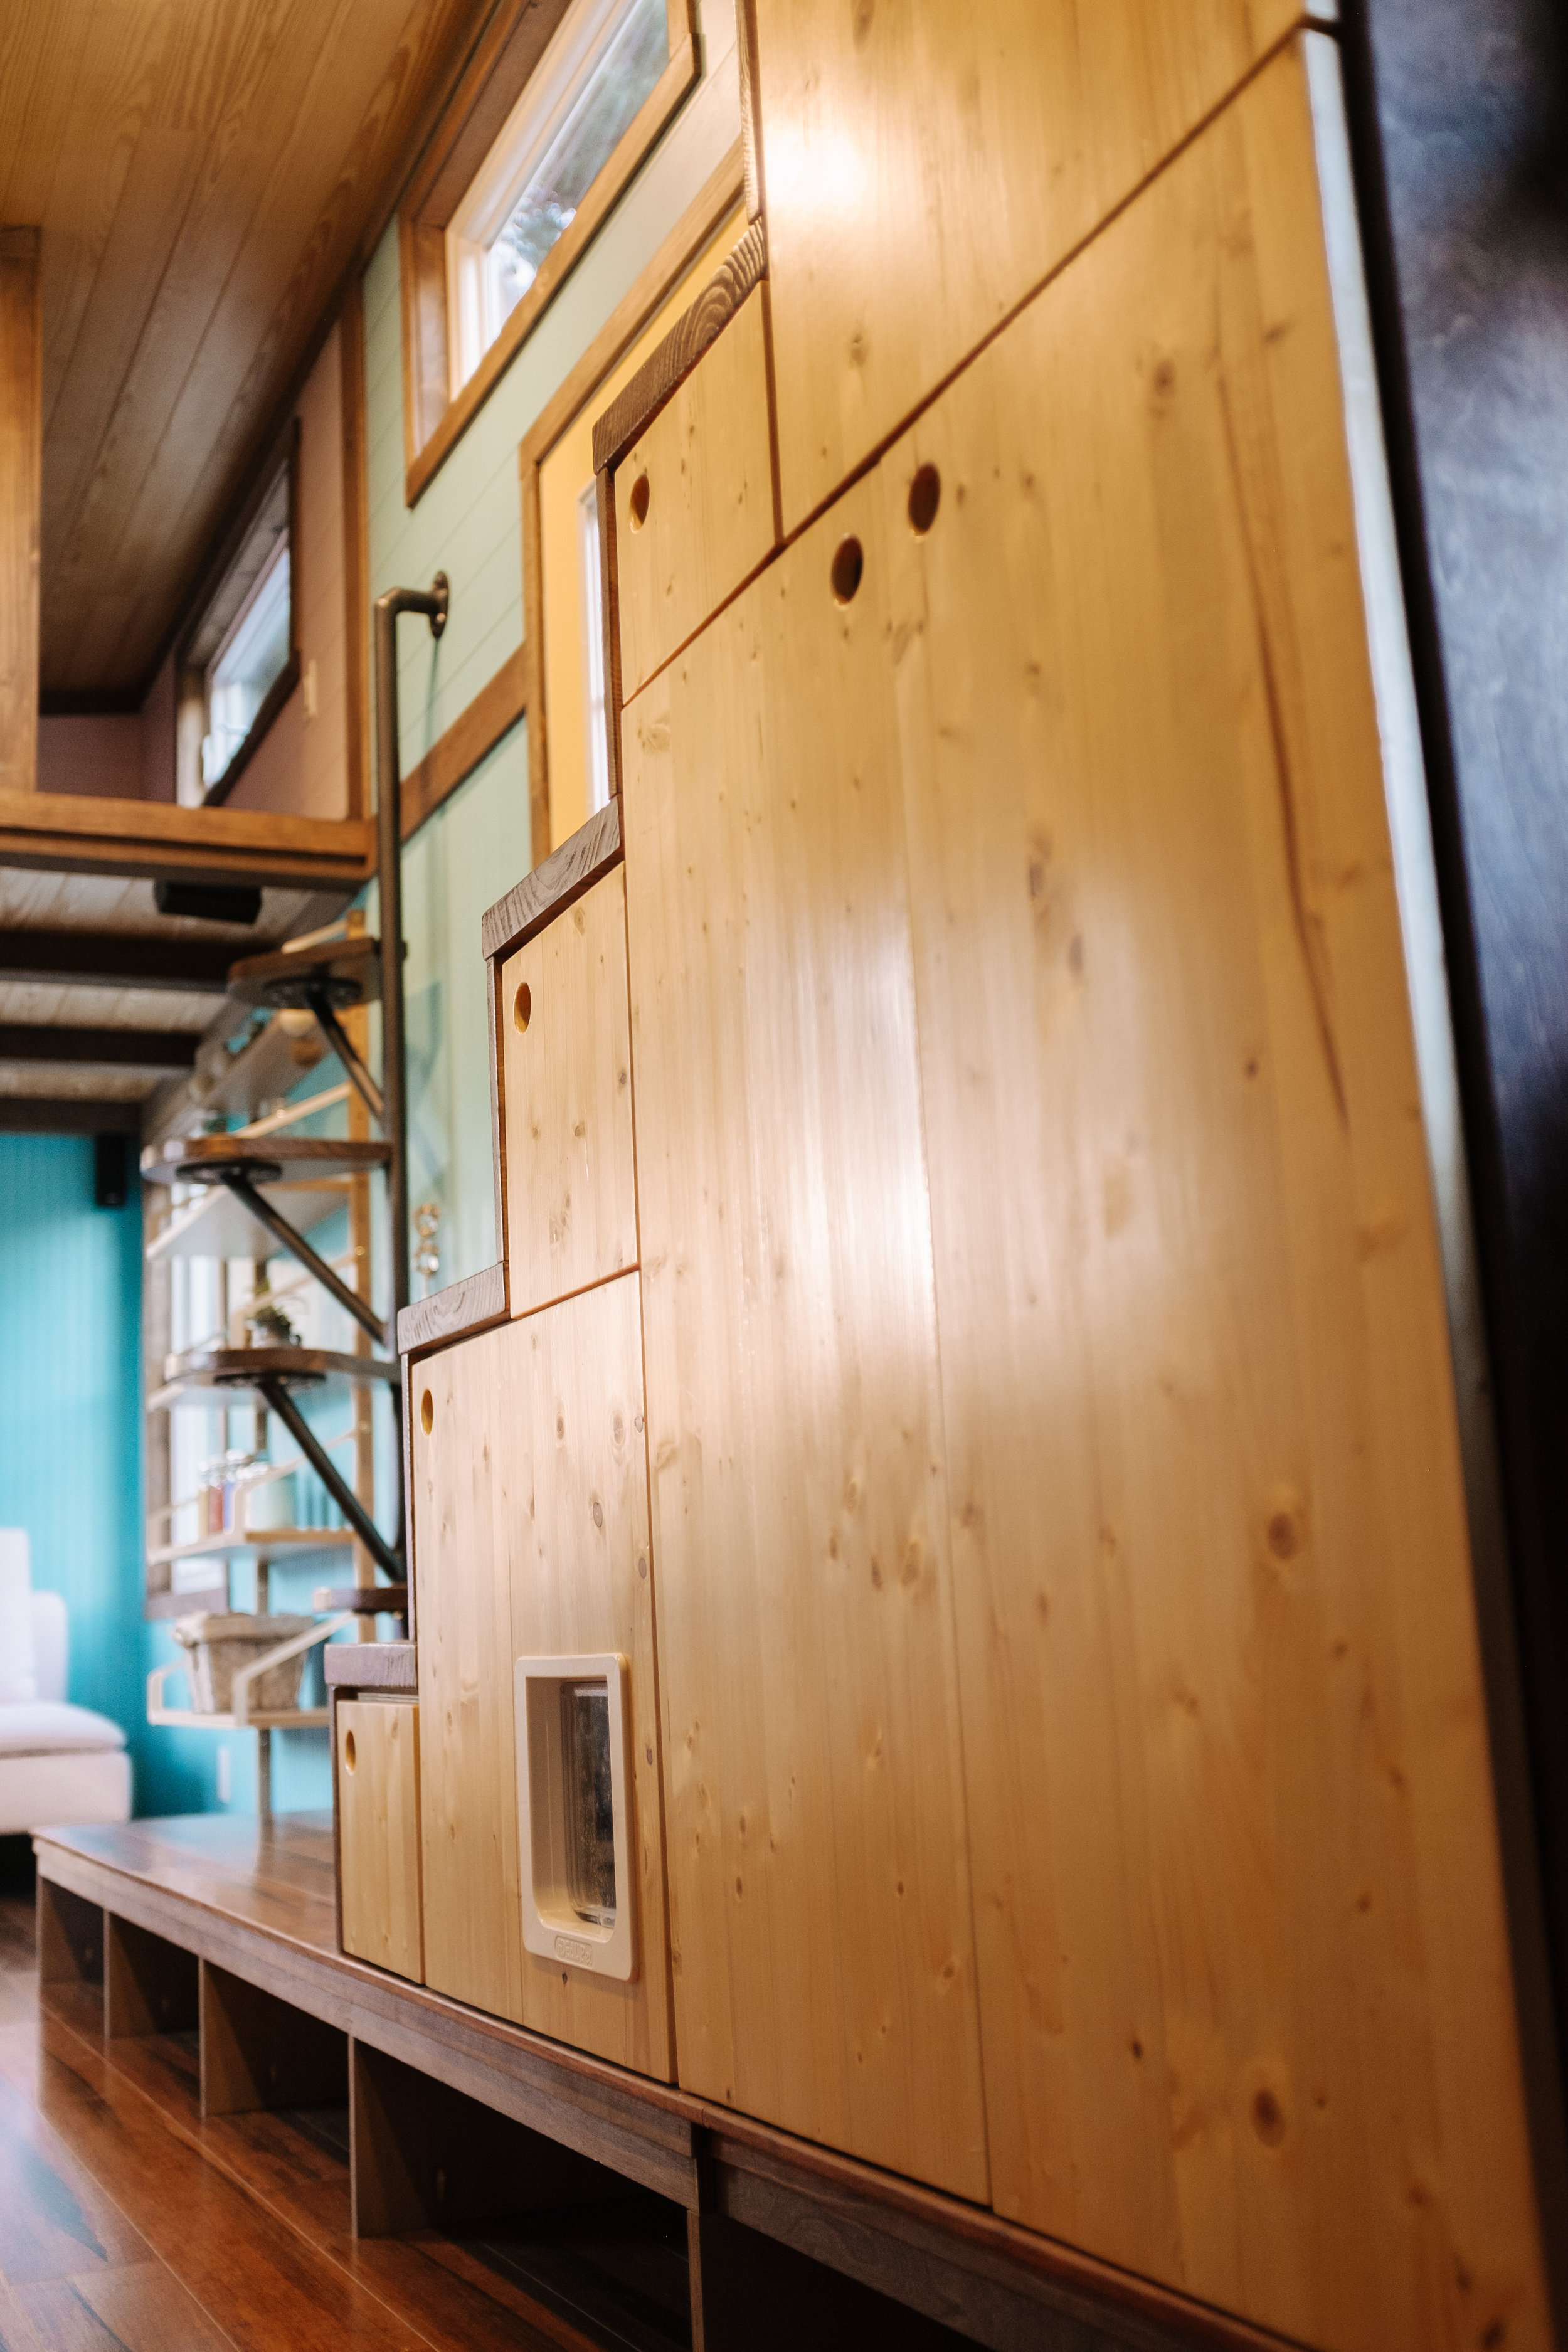 The Big Whimsy by Wind River Tiny Homes - built in storage stairs, custom lily pad spiral stairs, bamboo flooring, cat door, litter box cubby with vent fan